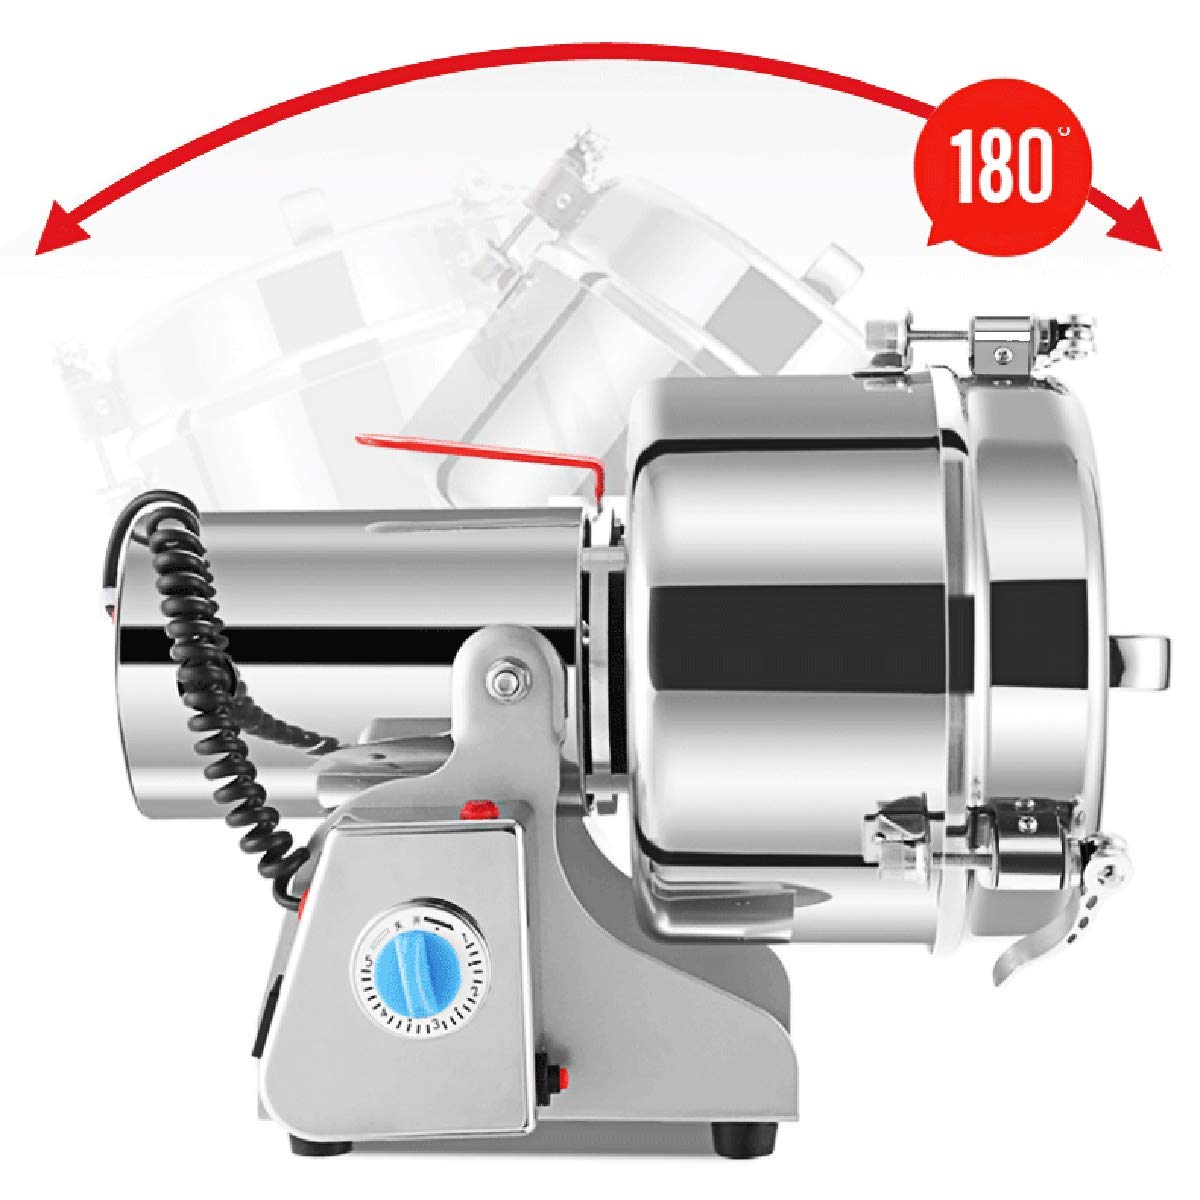 RRH 500G Swing Type Grain Mill Electric Spice Nut and Coffee Grinder High Speed 25000 RPM Stainless Steel Mill Grinder 2300W Powder Machine 50-300 Mesh, for Herbs Corn Sesame Soybean Pepper Bait Feed by RRH (Image #6)